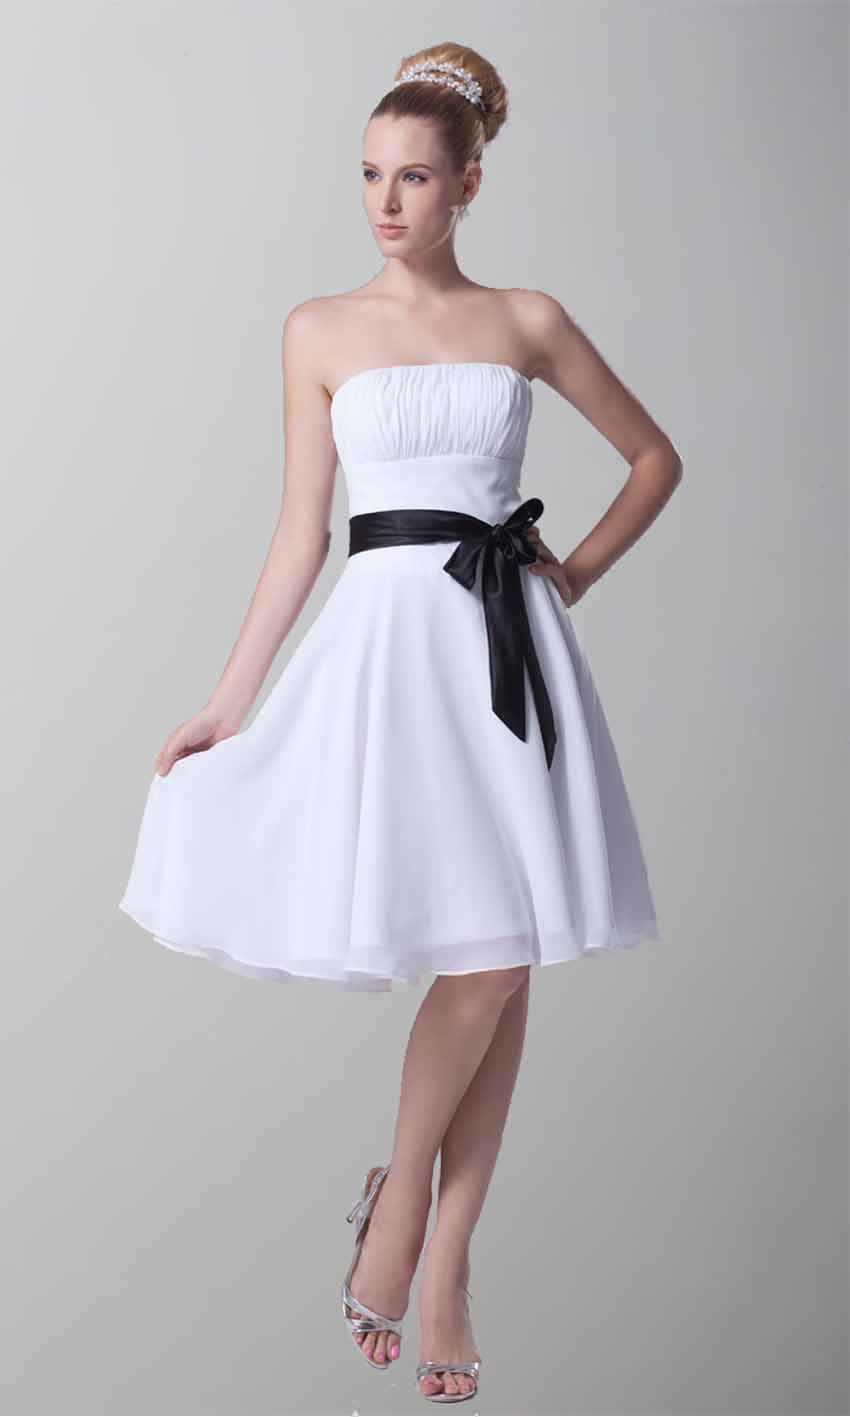 £94.00 : cheap prom dresses uk, bridesmaid dresses, 2014 prom & evening dresses, look for cheap elegant prom dresses 2014, cocktail gowns, or dresses for special occasions? kissprom.co.uk offers various bridesmaid dresses, evening dress, free shipping to uk etc.